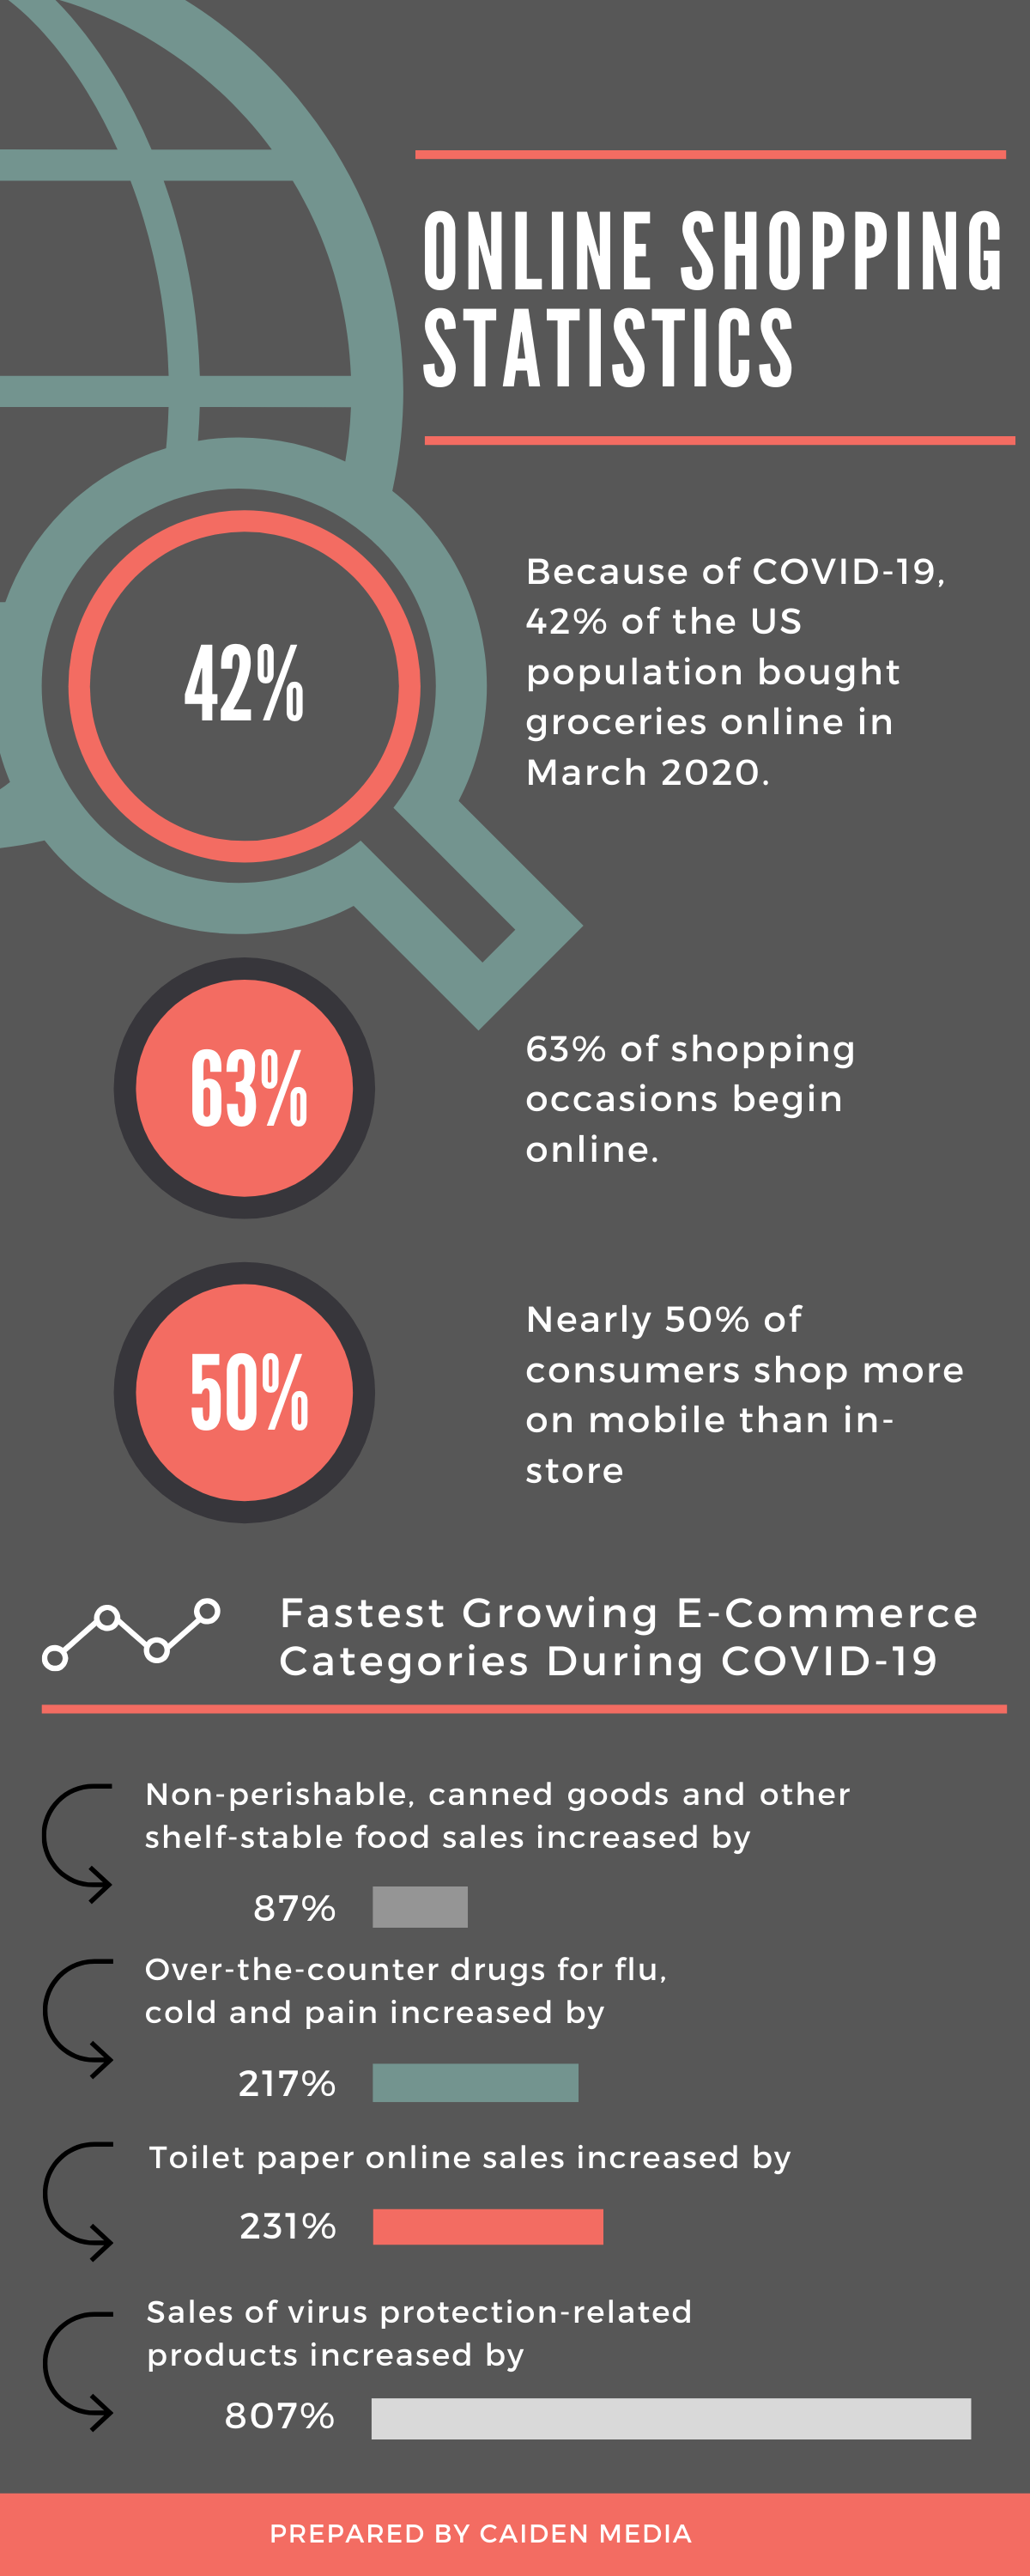 Impact of COVID-19 on Online Shopping